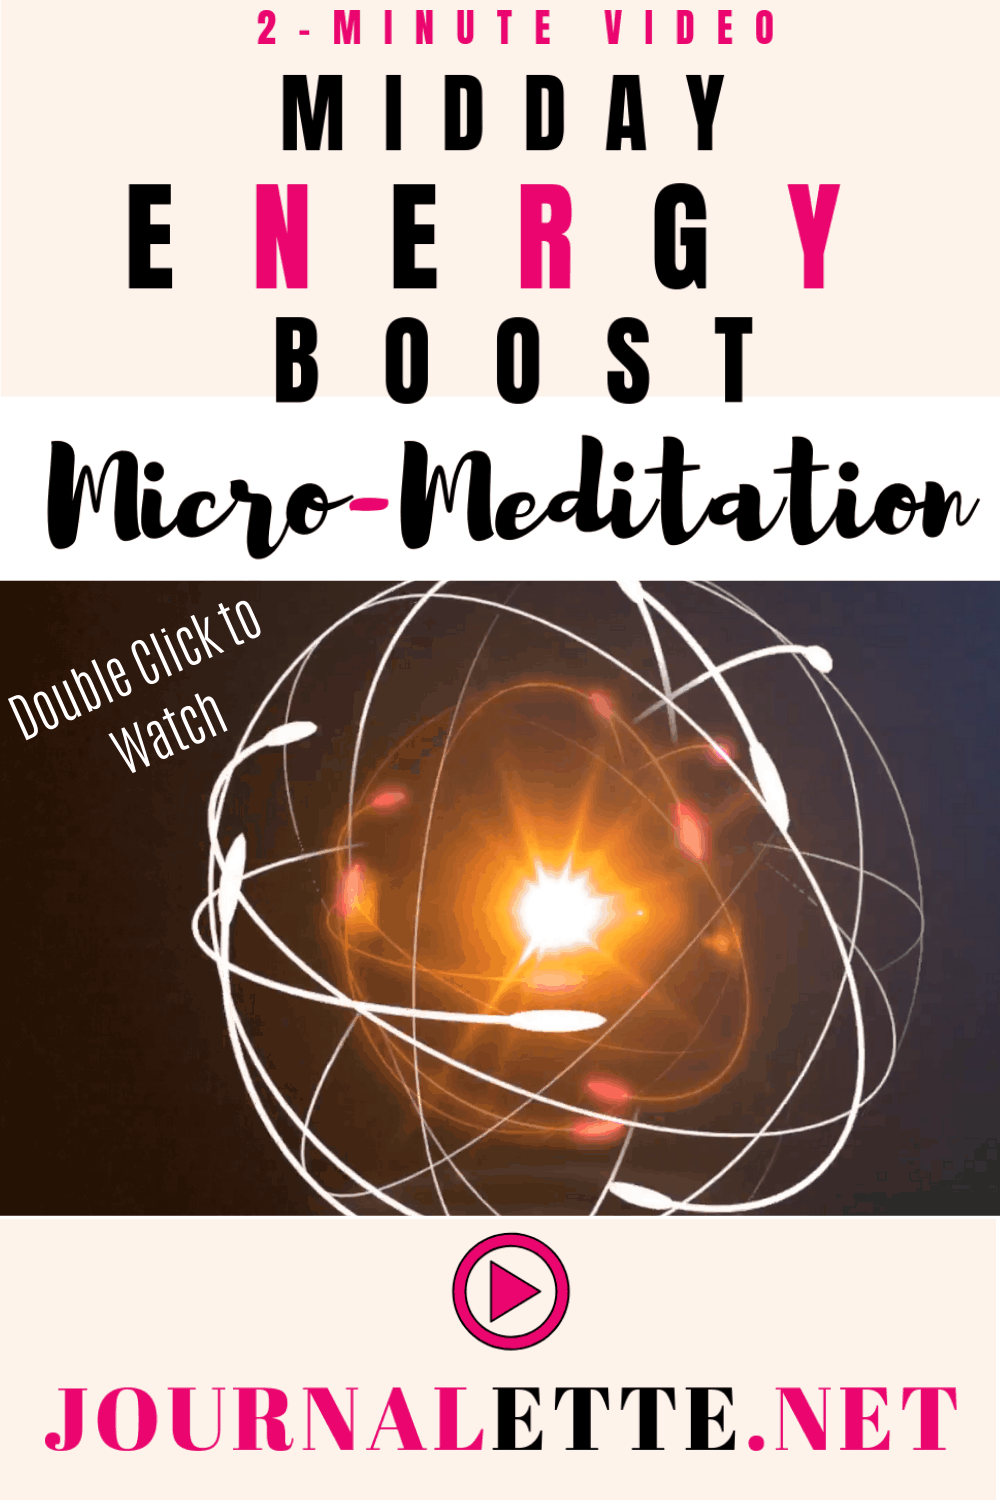 Image with text box Midday Energy Boost Meditation